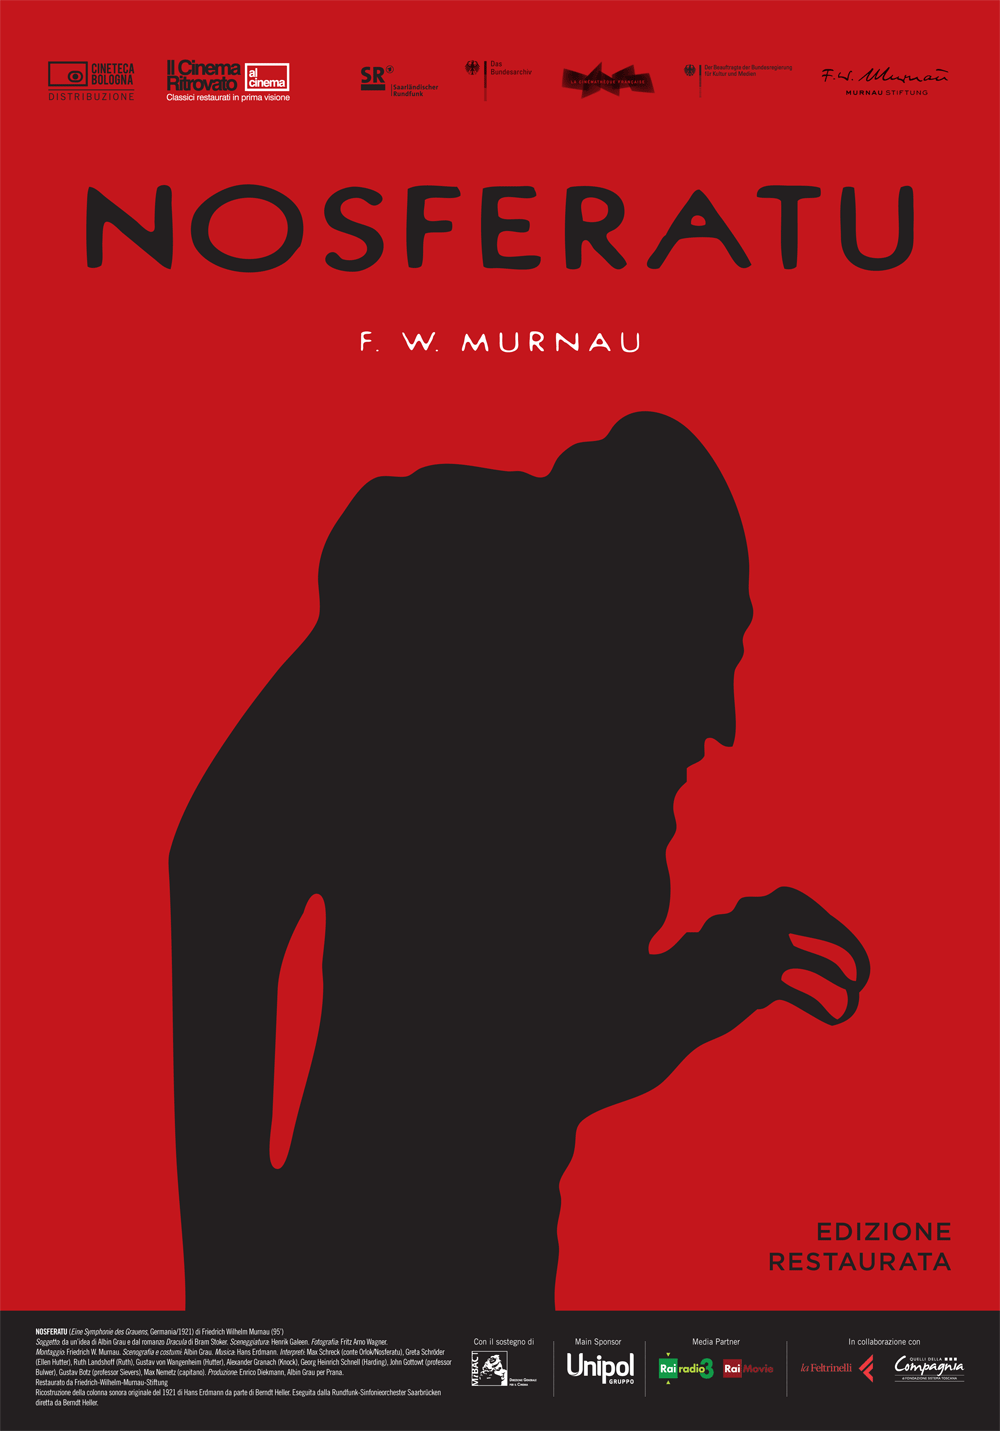 Nosferatu (1922) Italian poster for 2006 restoration